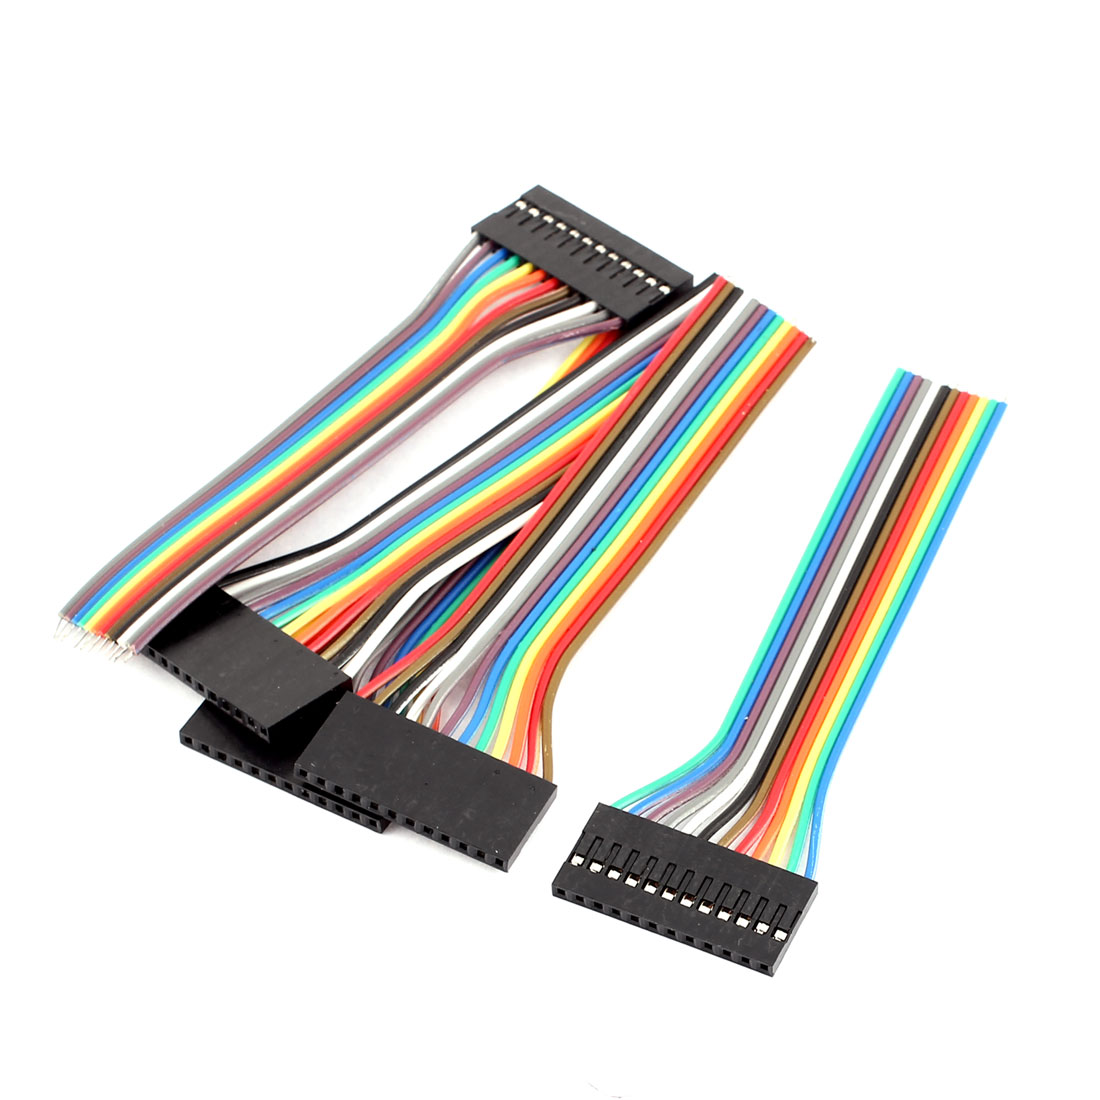 5PCS 2.54mm Pitch 12P Female Breadboard Single Head Jumper Wire Cable 10cm Long